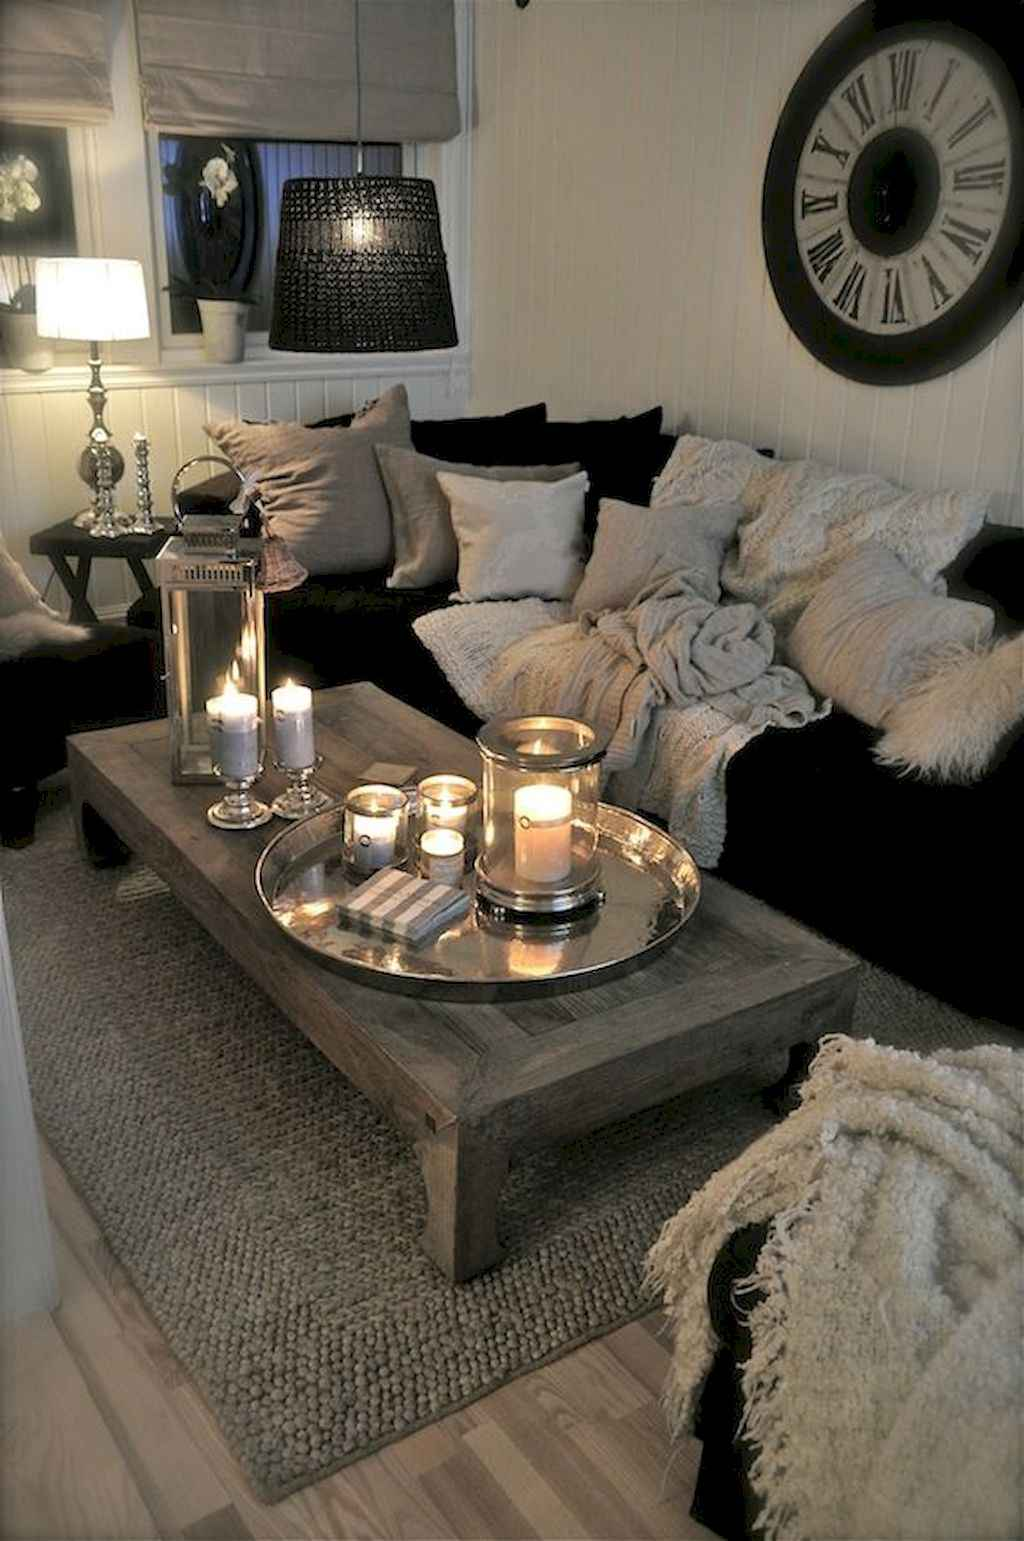 Cozy apartment decorating ideas on a budget (62)